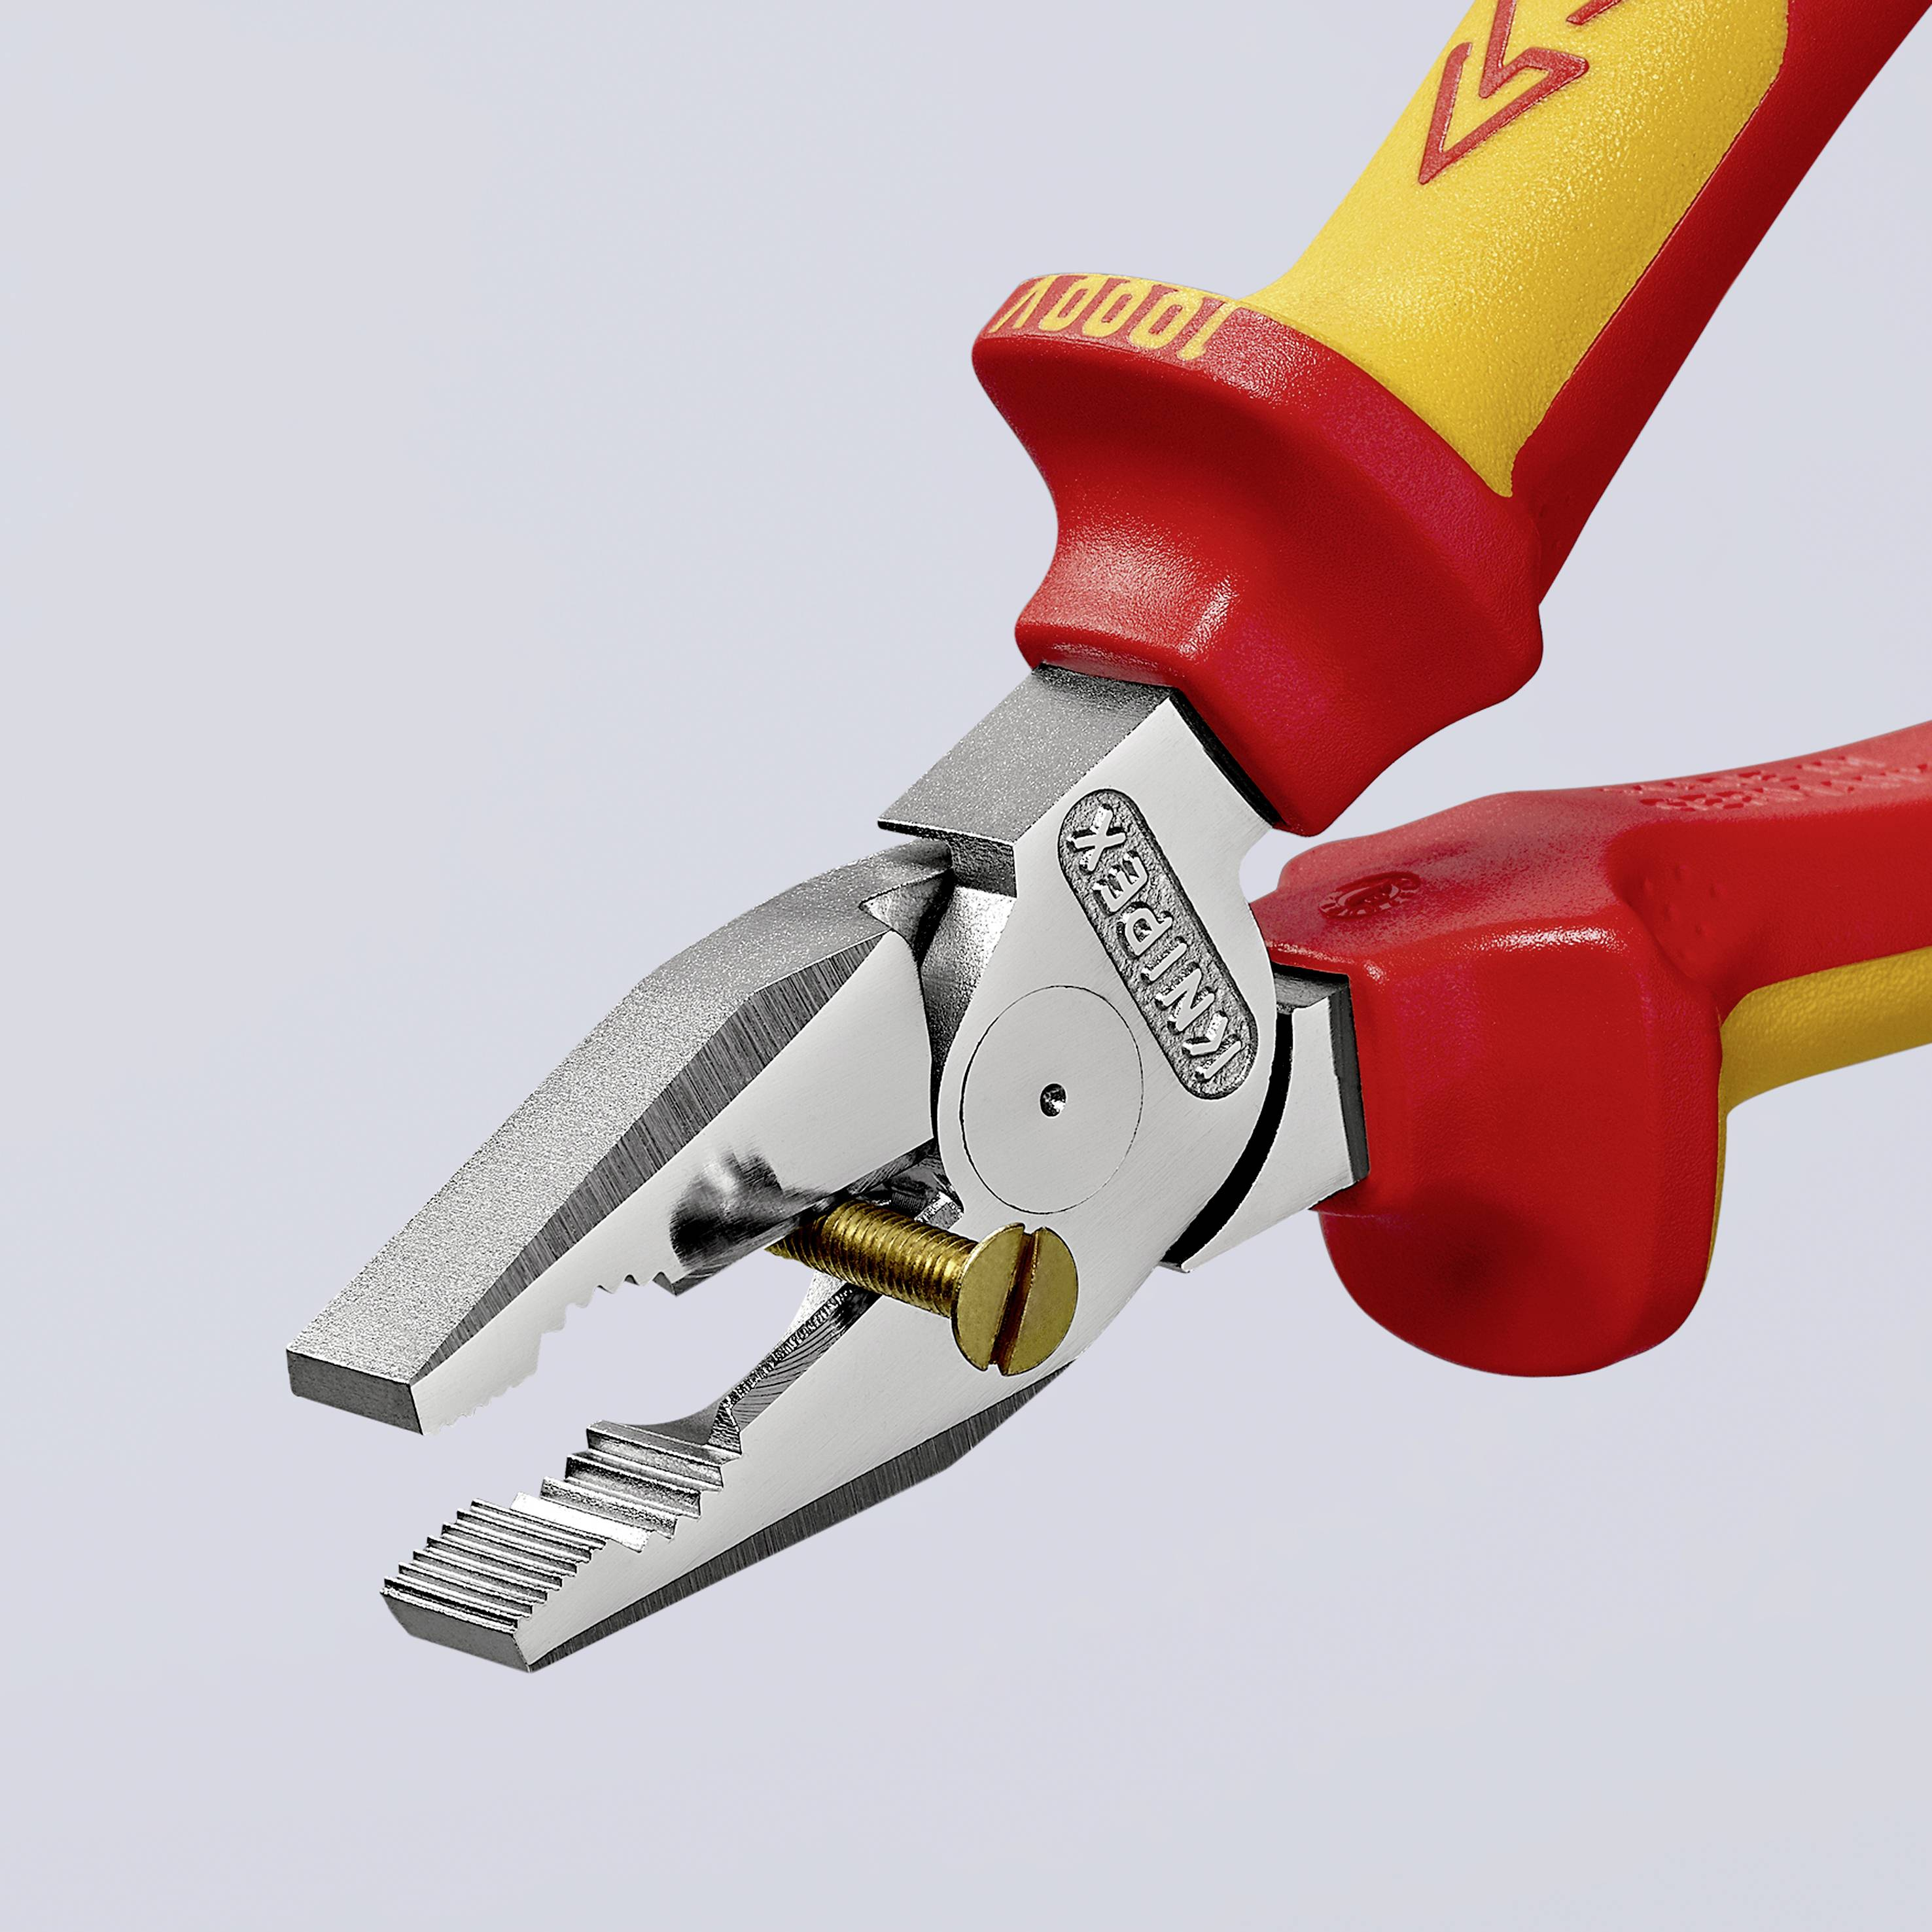 Knipex 03 06 200 Pince universelle VDE 200mm Import Allemagne